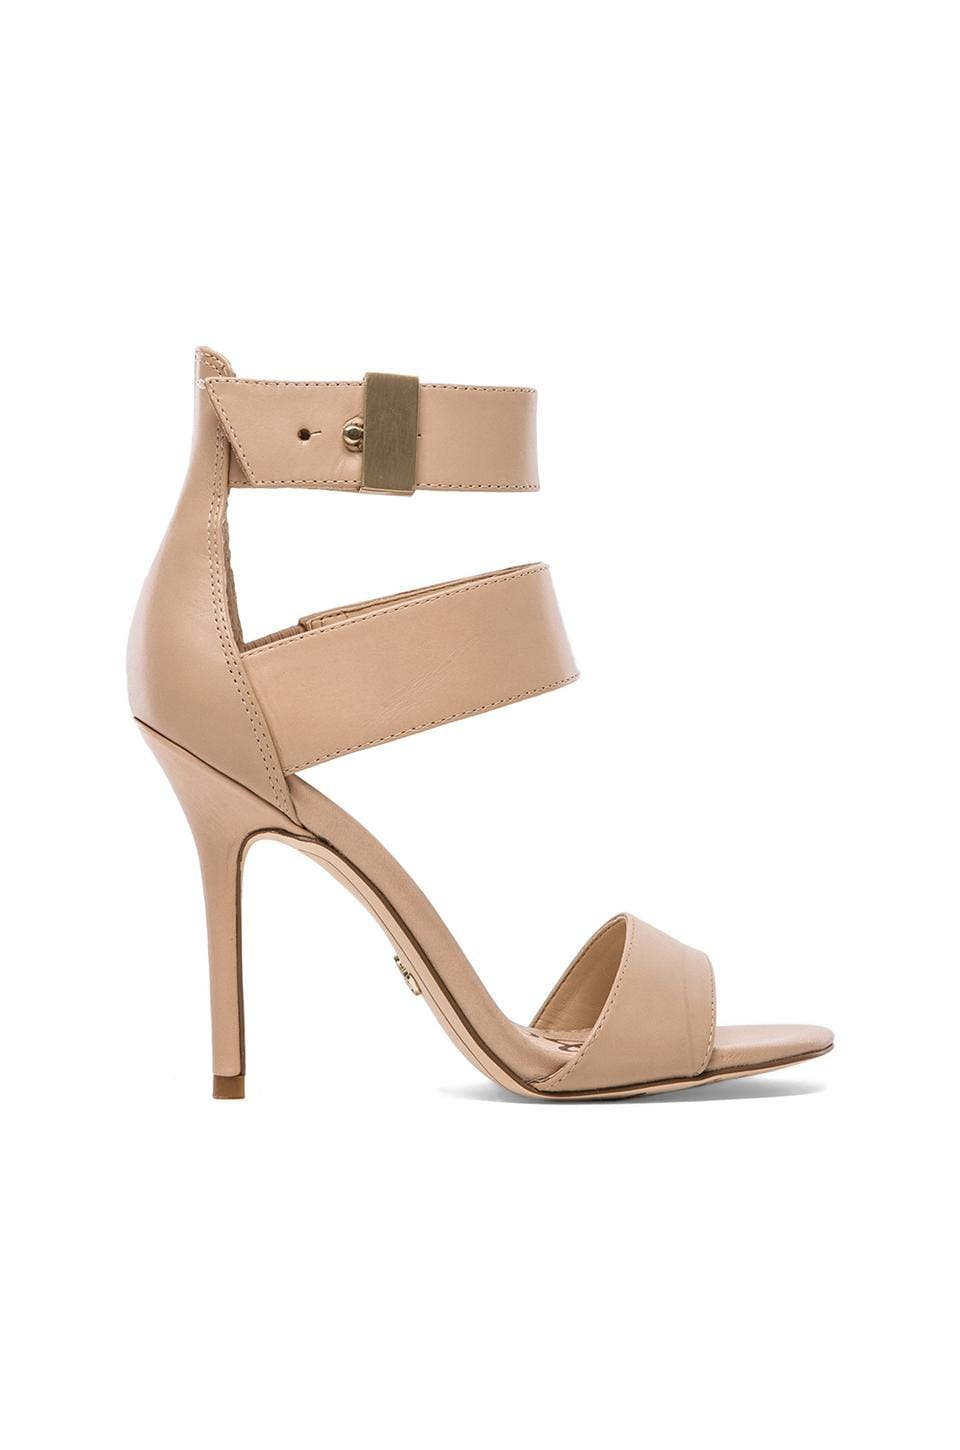 Sam Edelman Addie Heel in Buff Nude